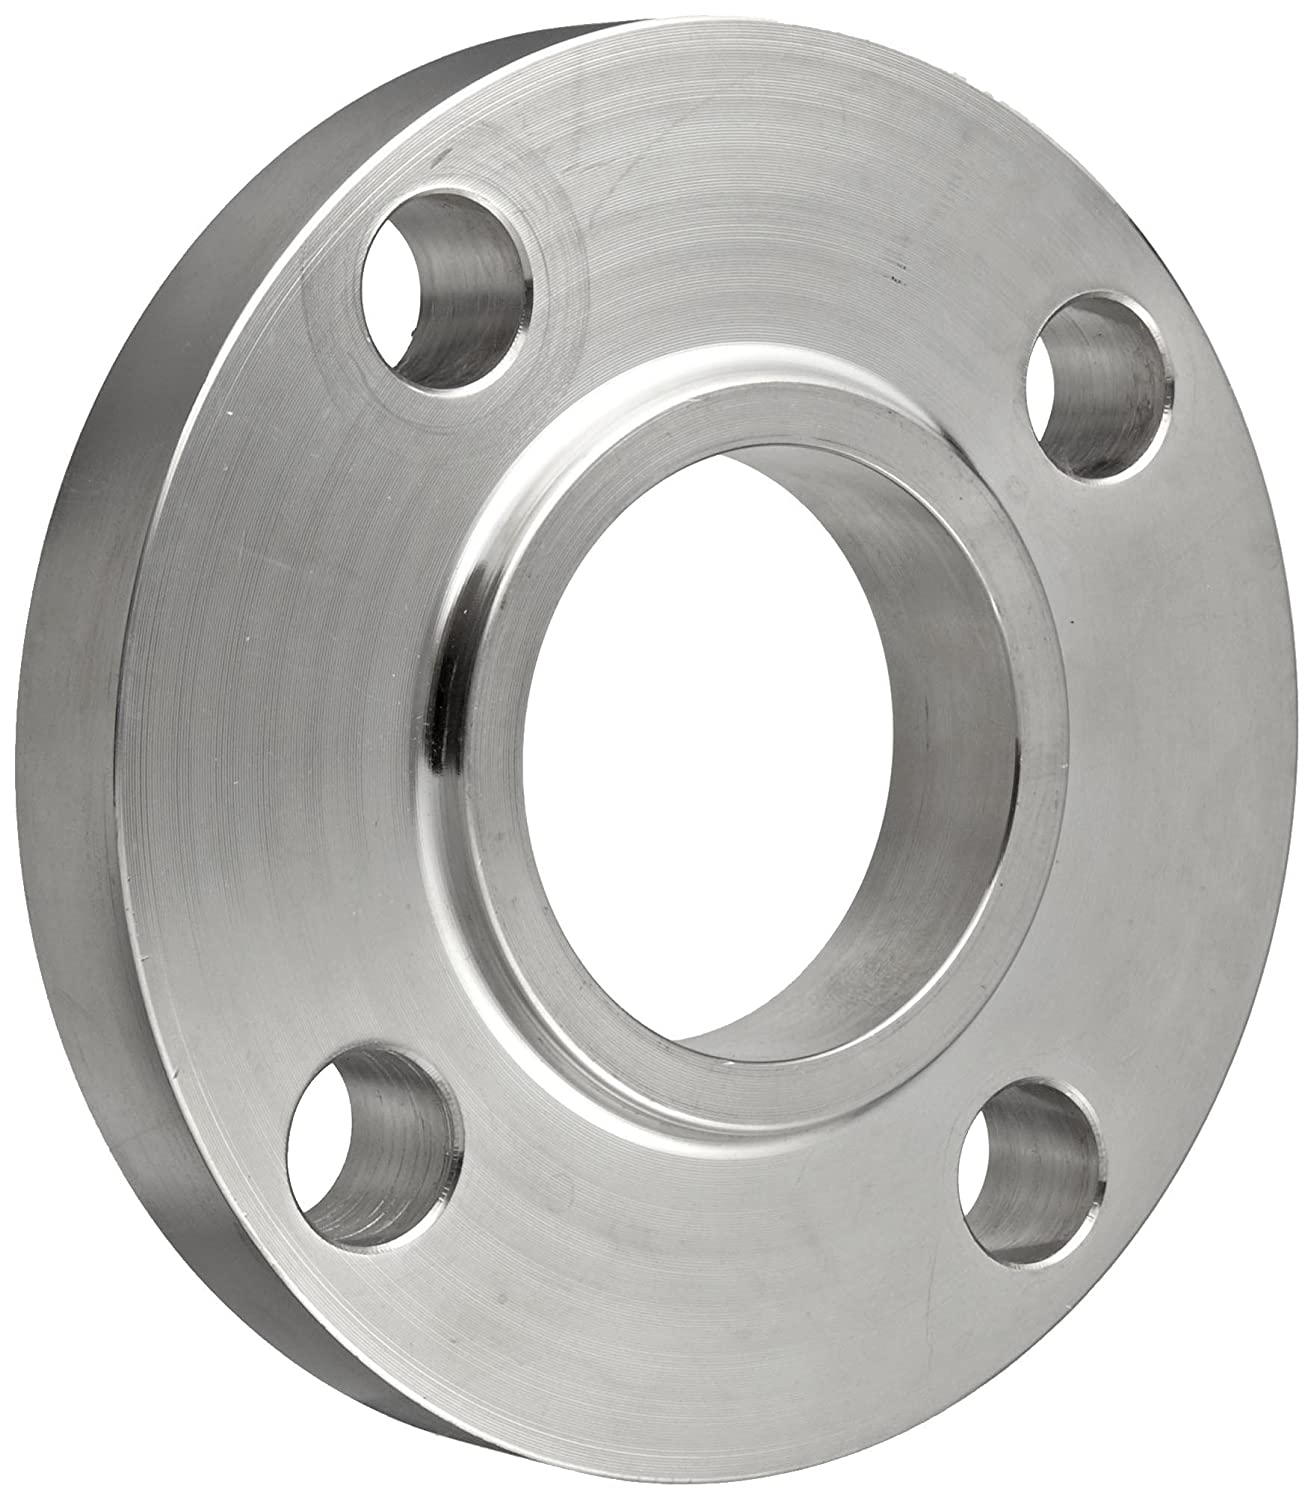 Amazon.com: Acero inoxidable 316/316L Lap Joint Pipe Fitting ...